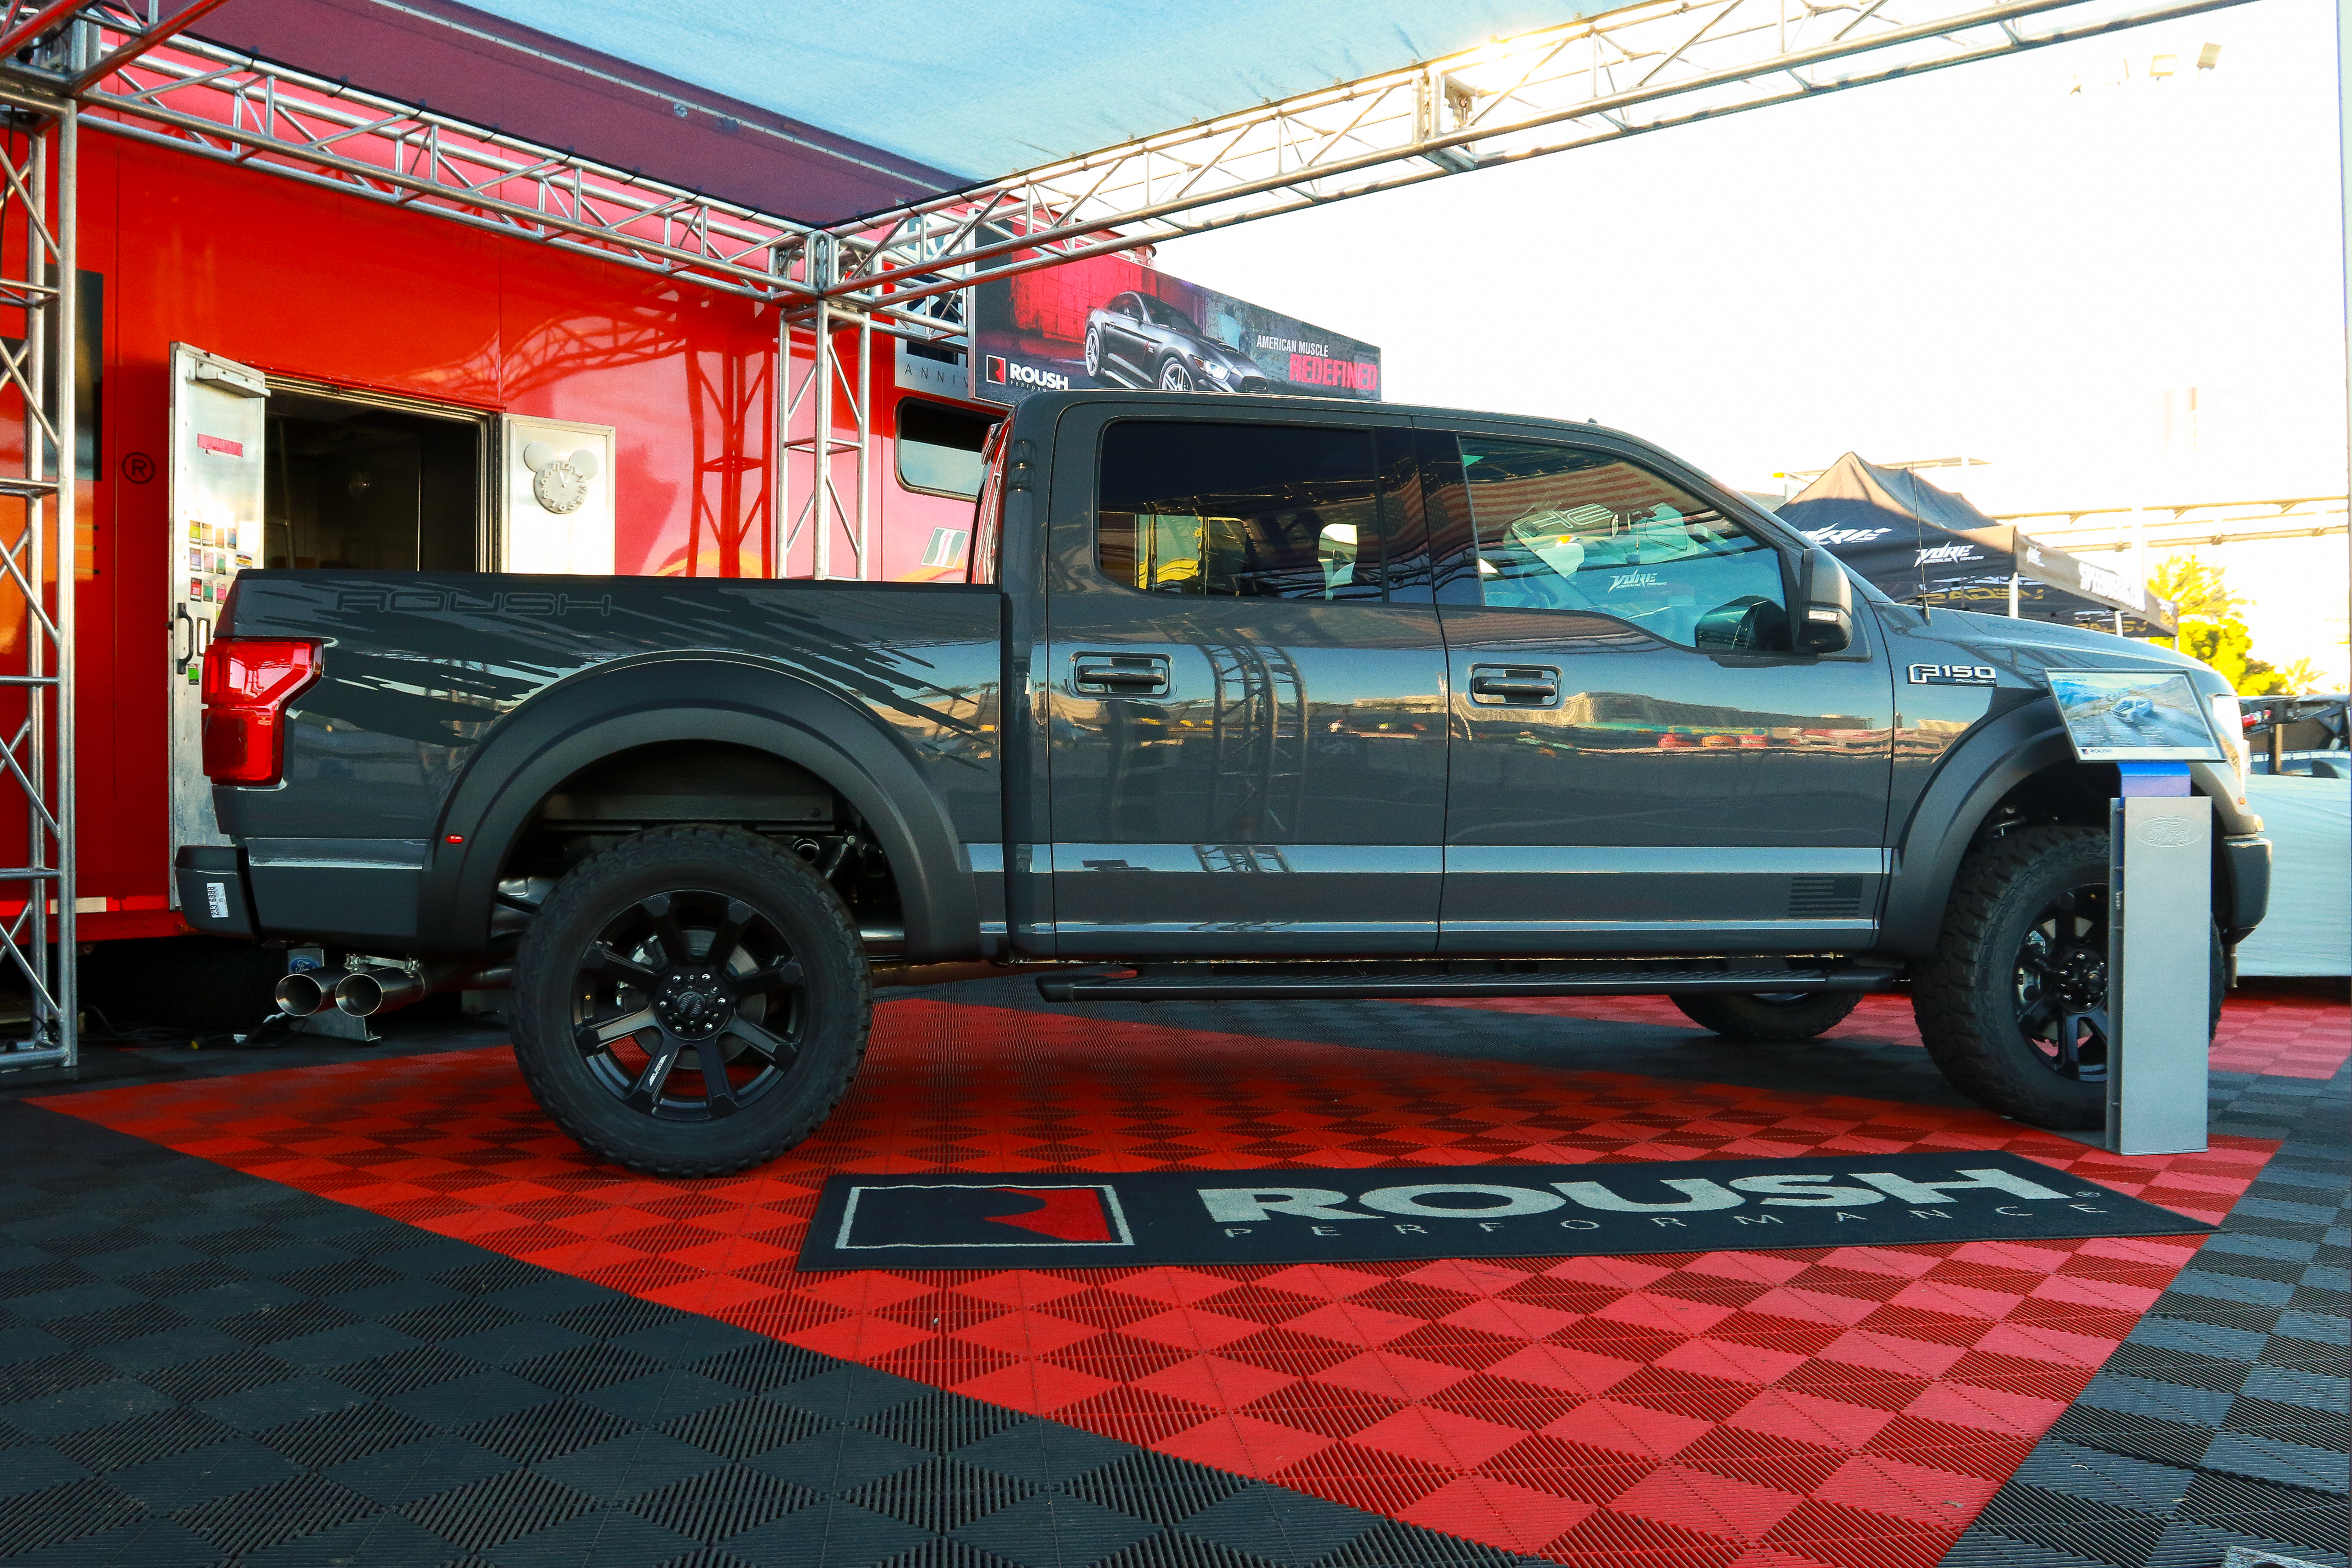 The F-150 SC showed off its impressive stance.